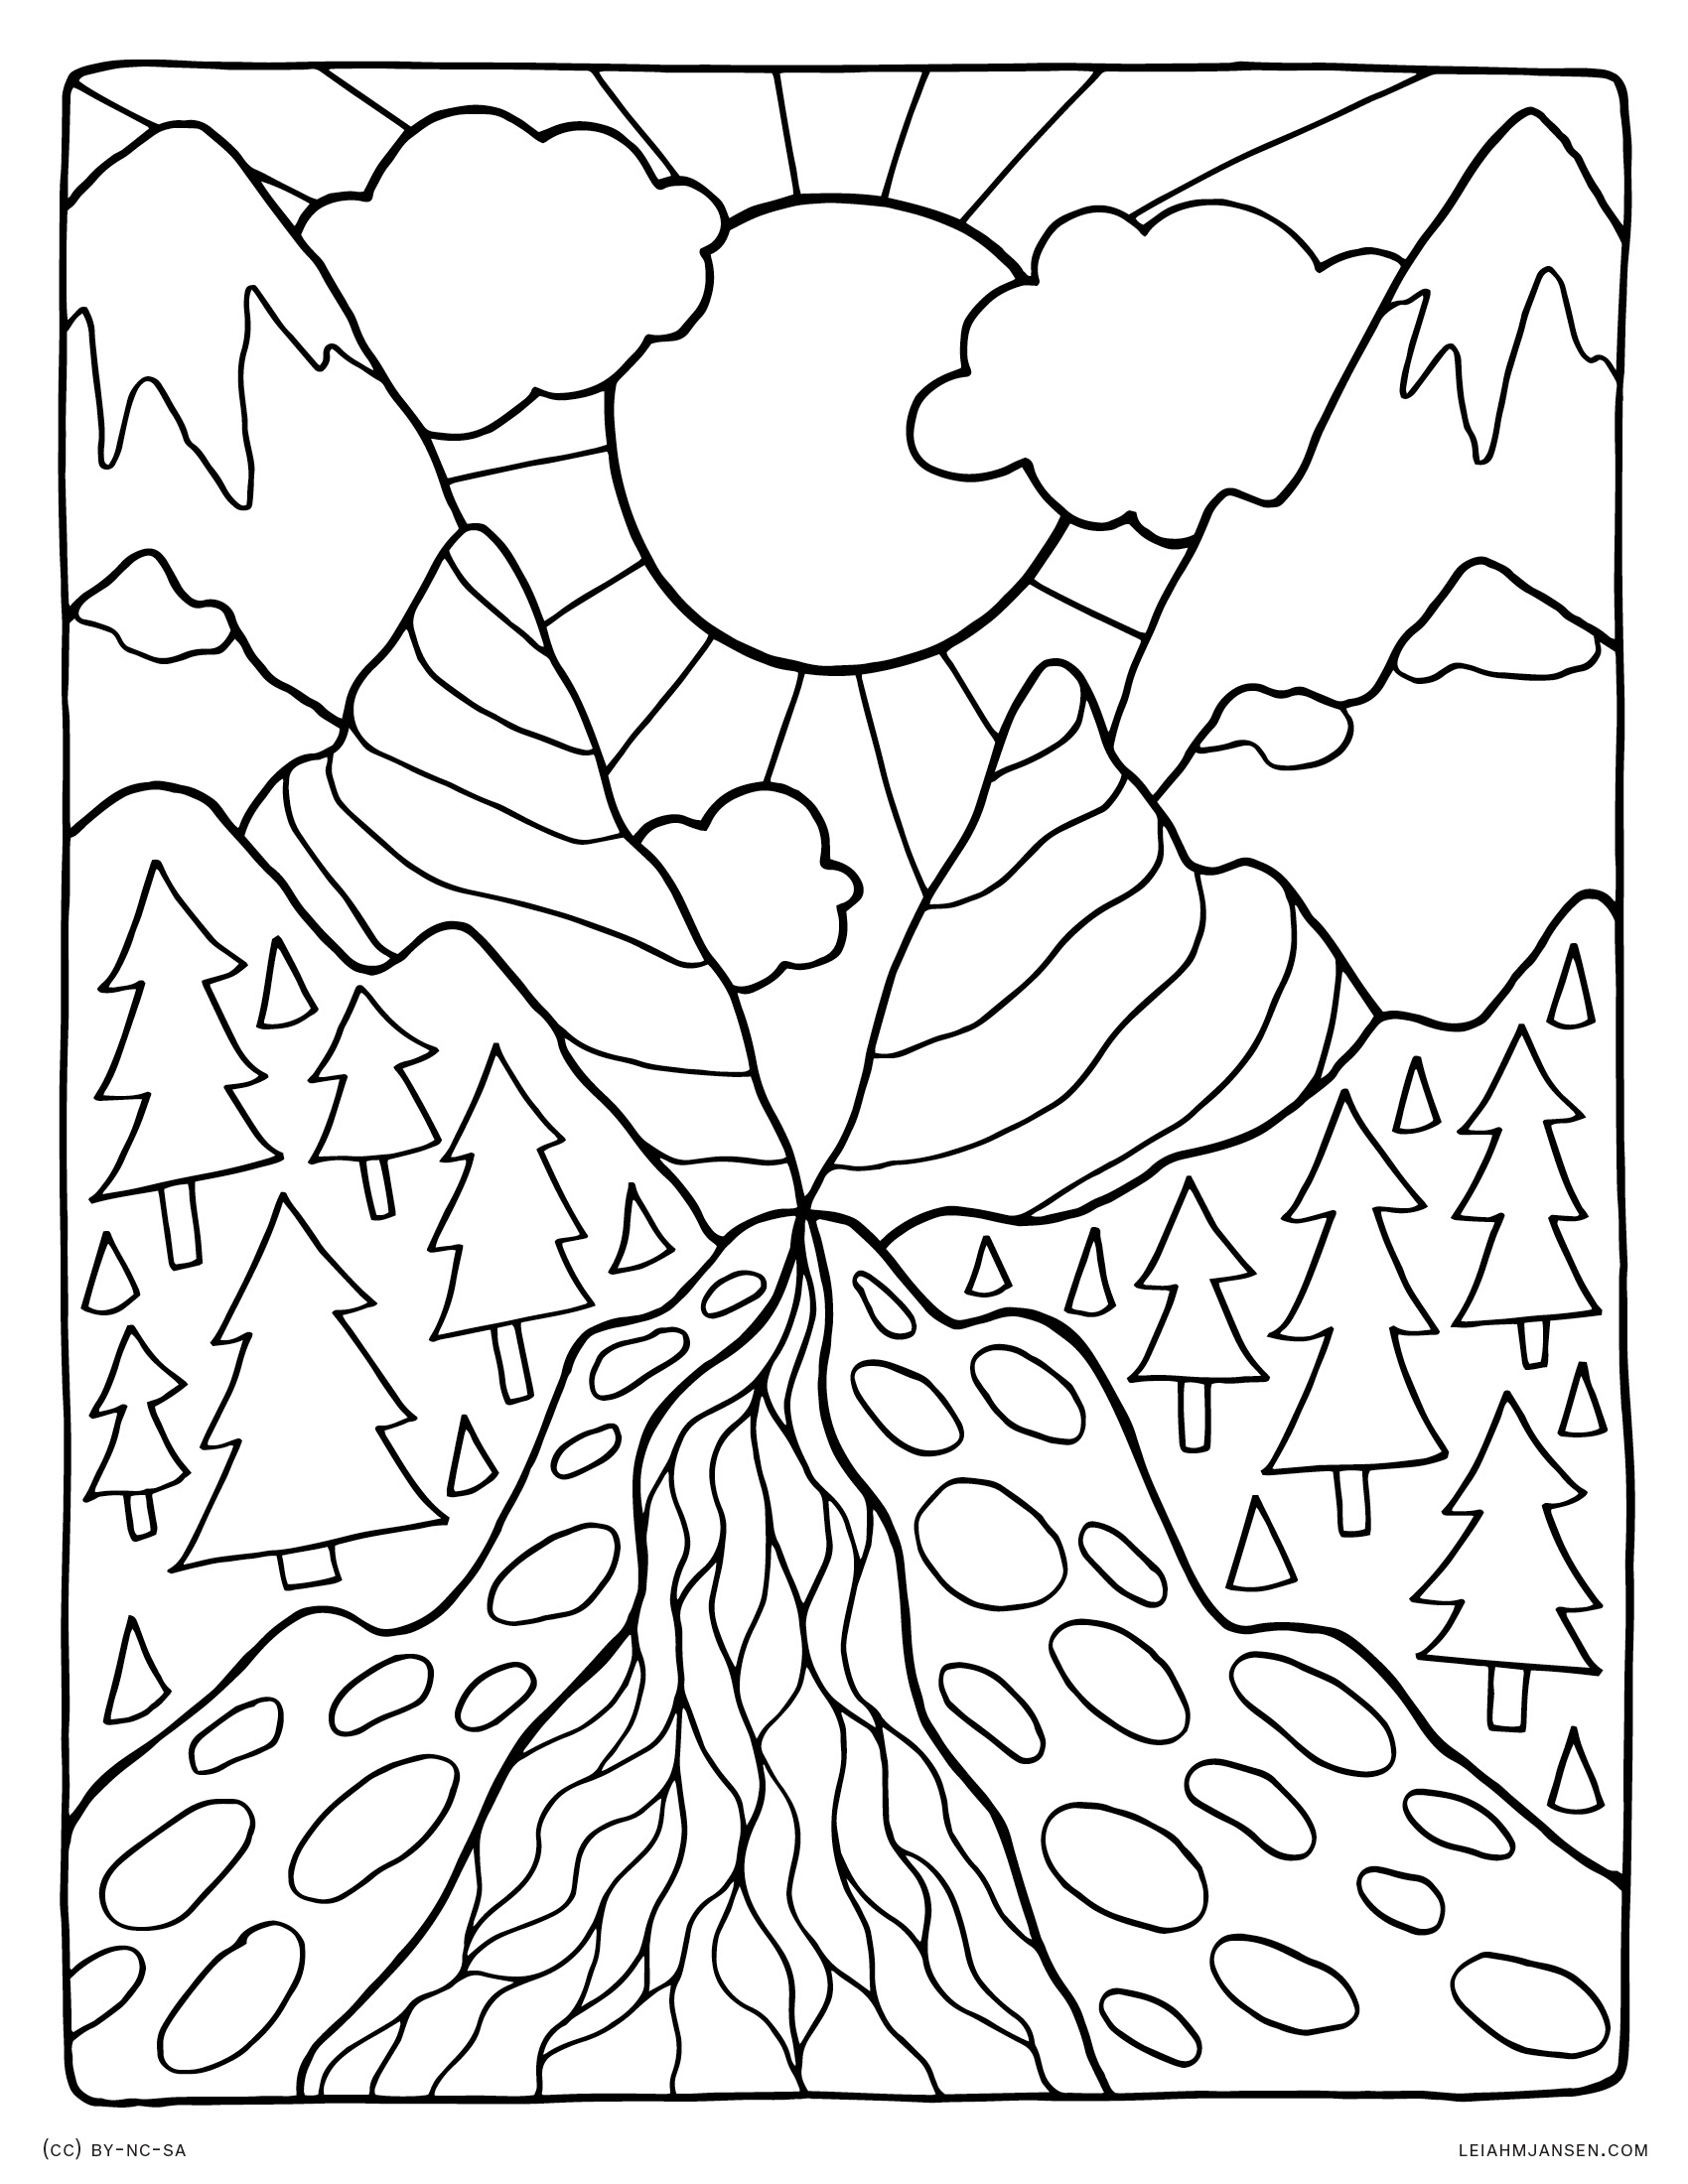 Uncategorized Free Nature Coloring Pages coloring pages mountain pass landscape peaceful nature scene free printable page for adults and kids